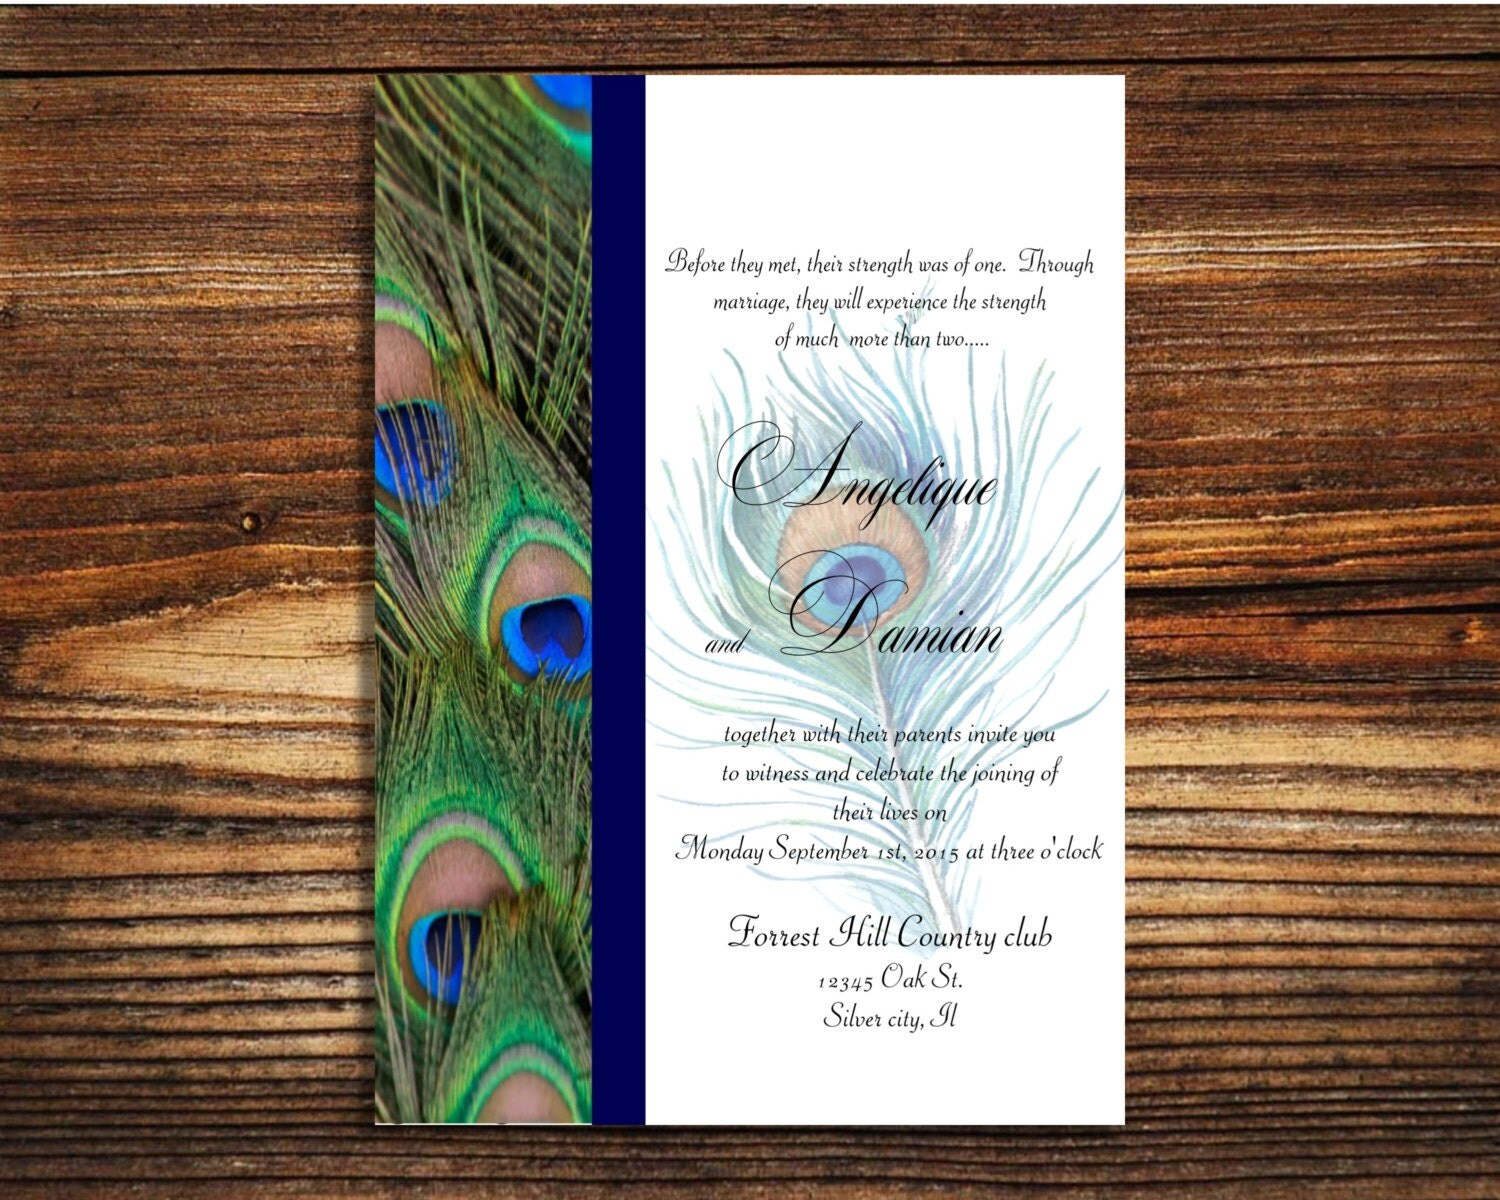 Peacock Feather Wedding Invitation: Instant Template Download Peacock Wedding Invitation Editable